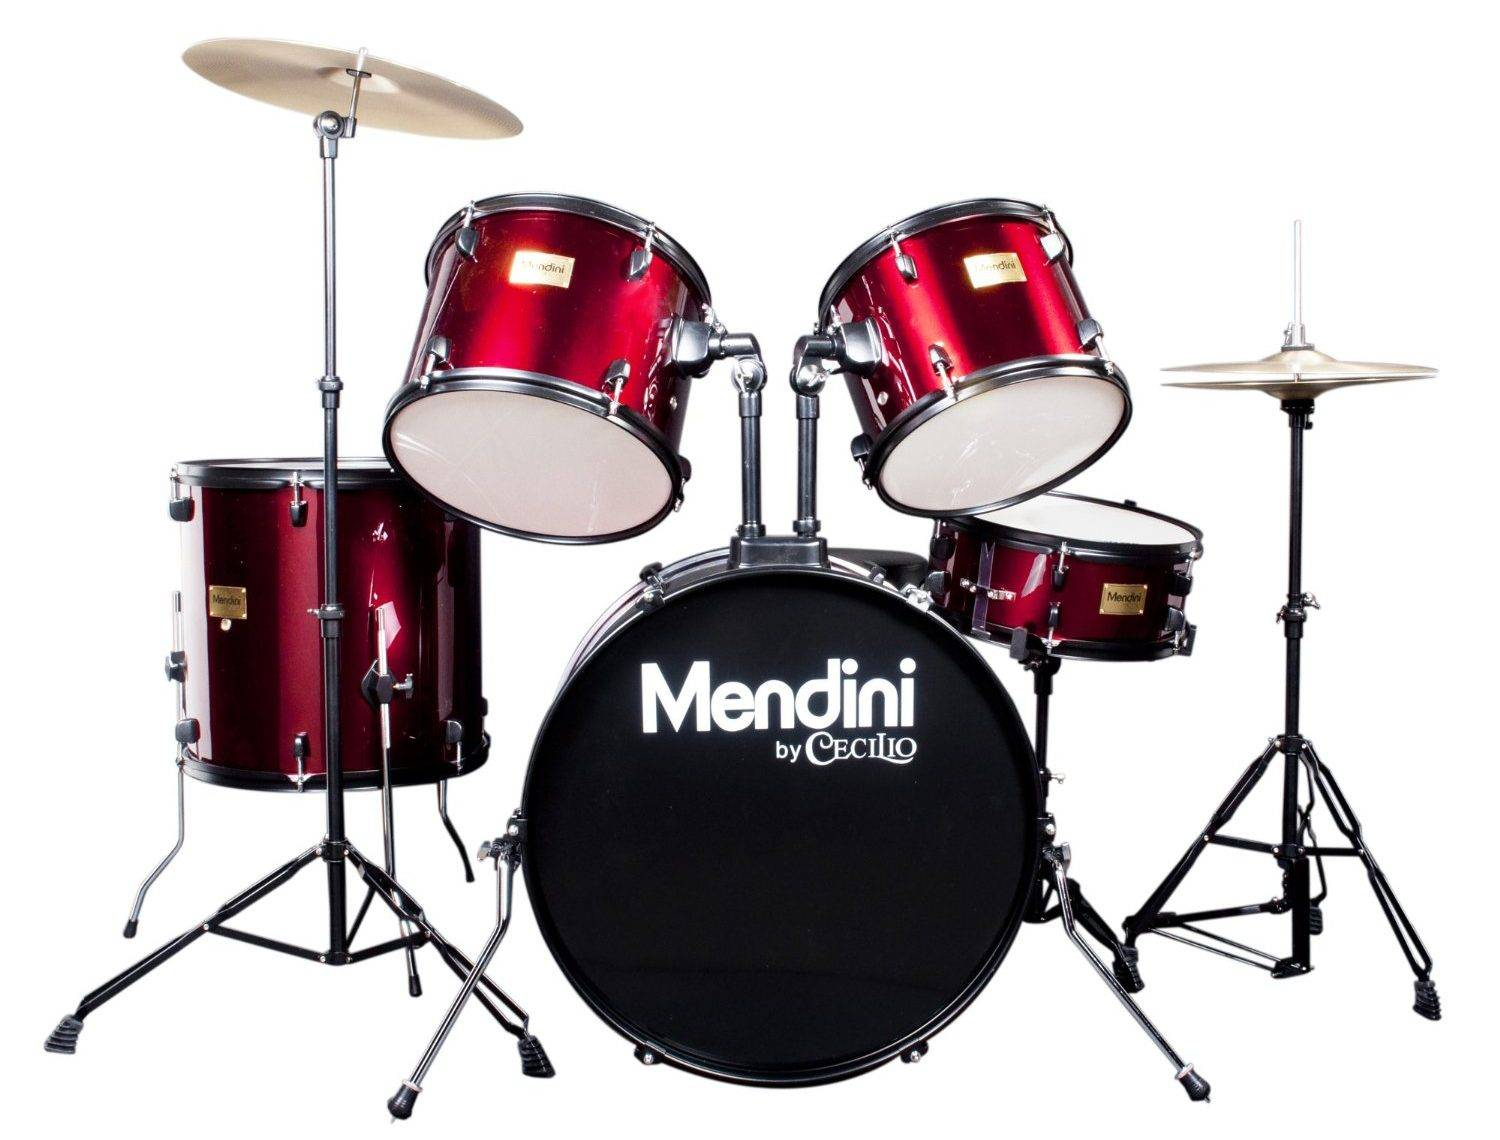 Mendini full size kit